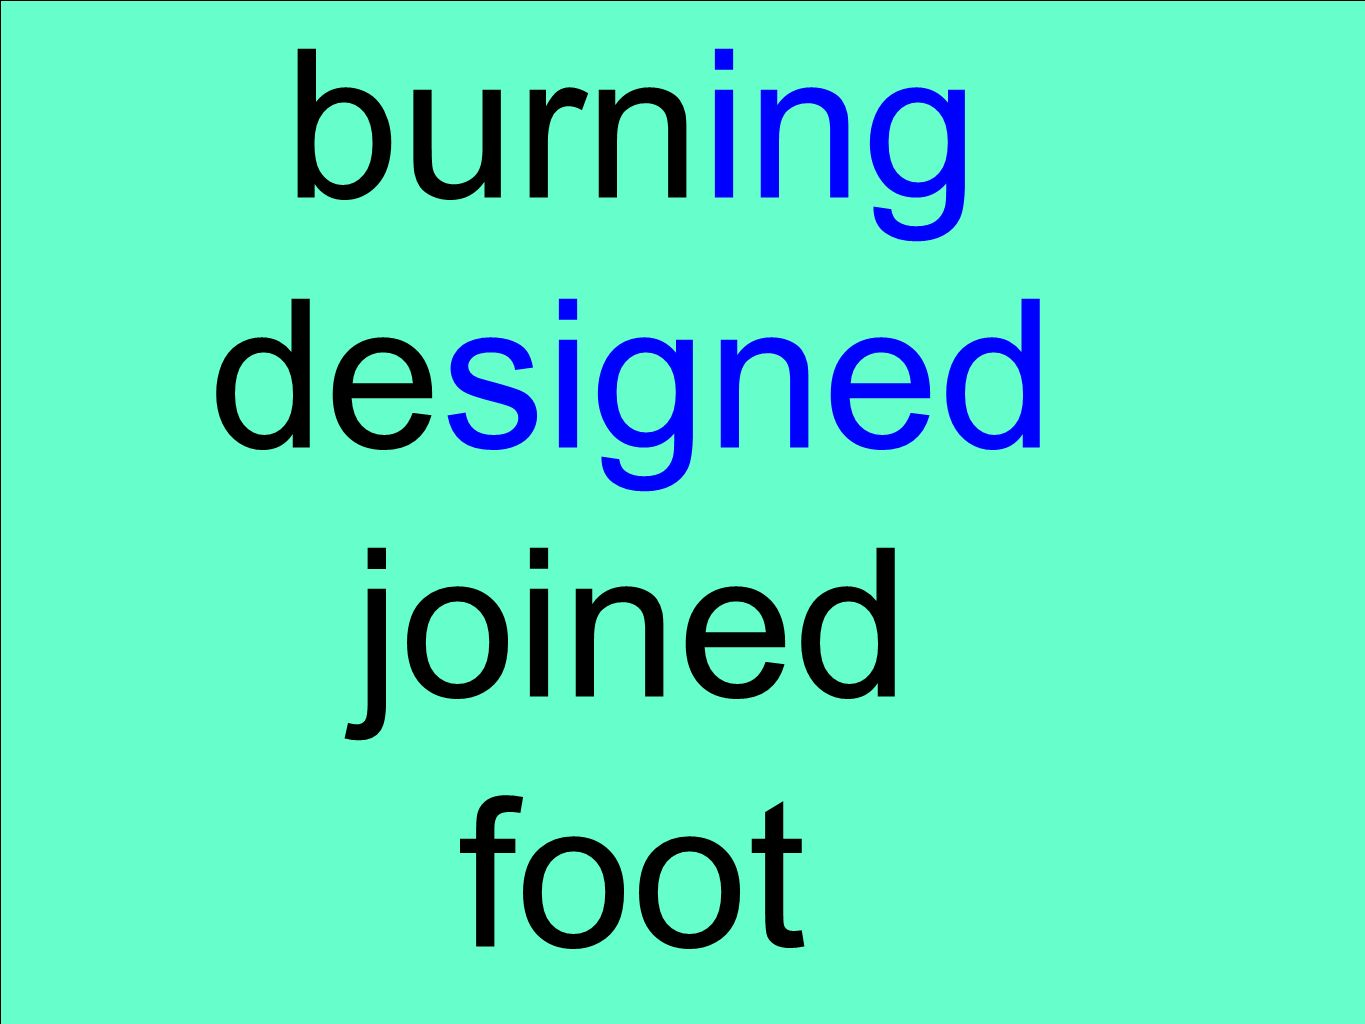 burning designed joined foot